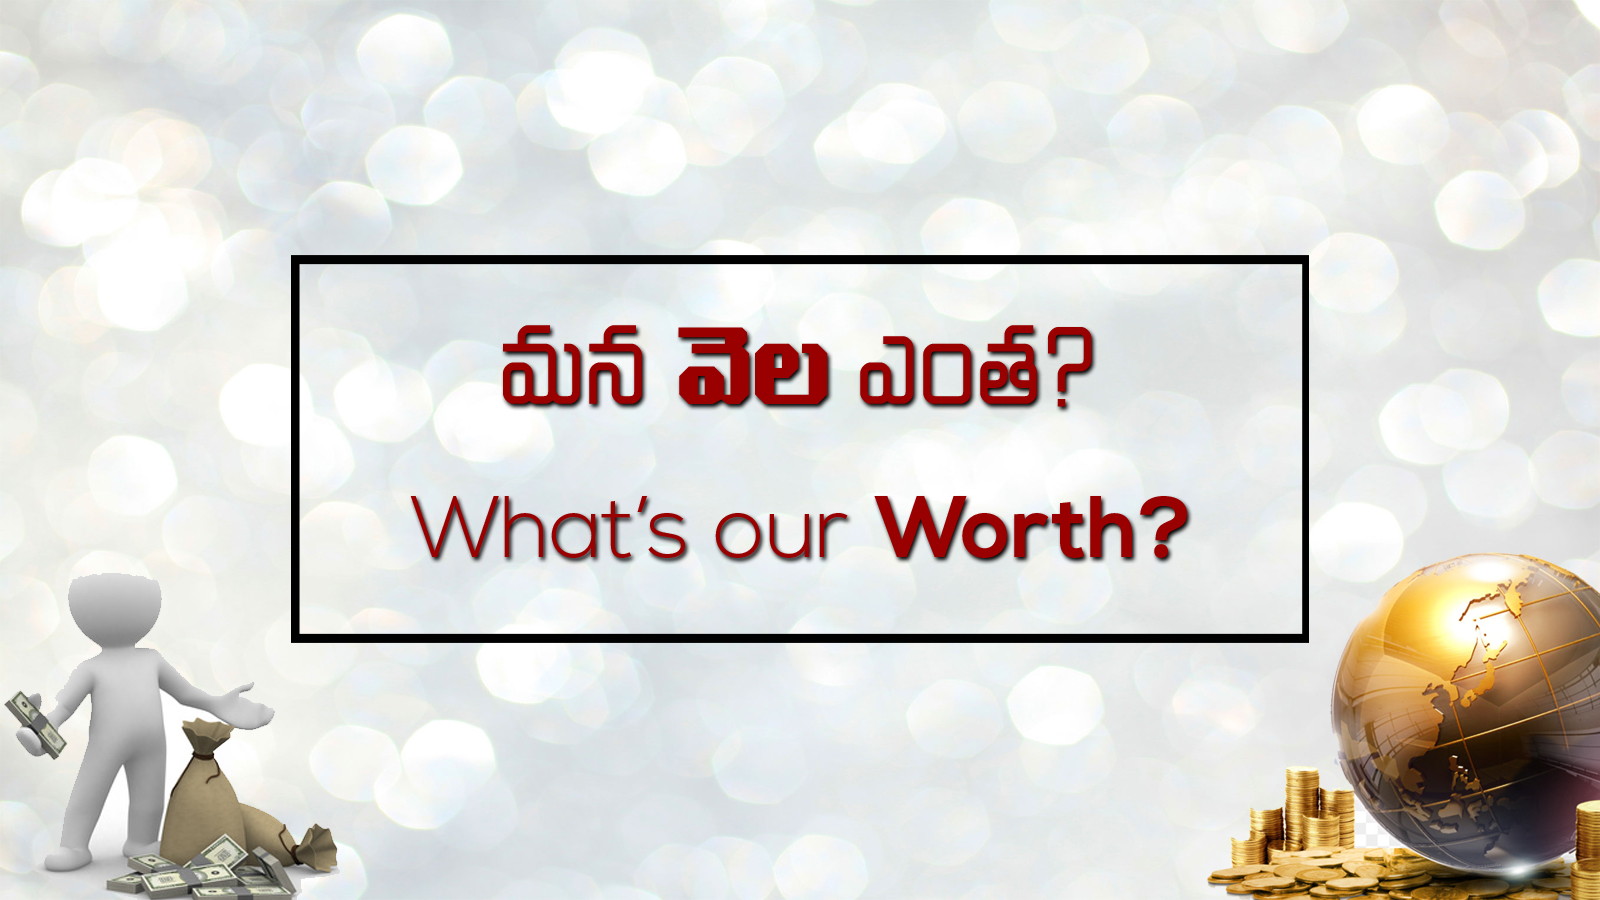 What's our Worth? (A313)